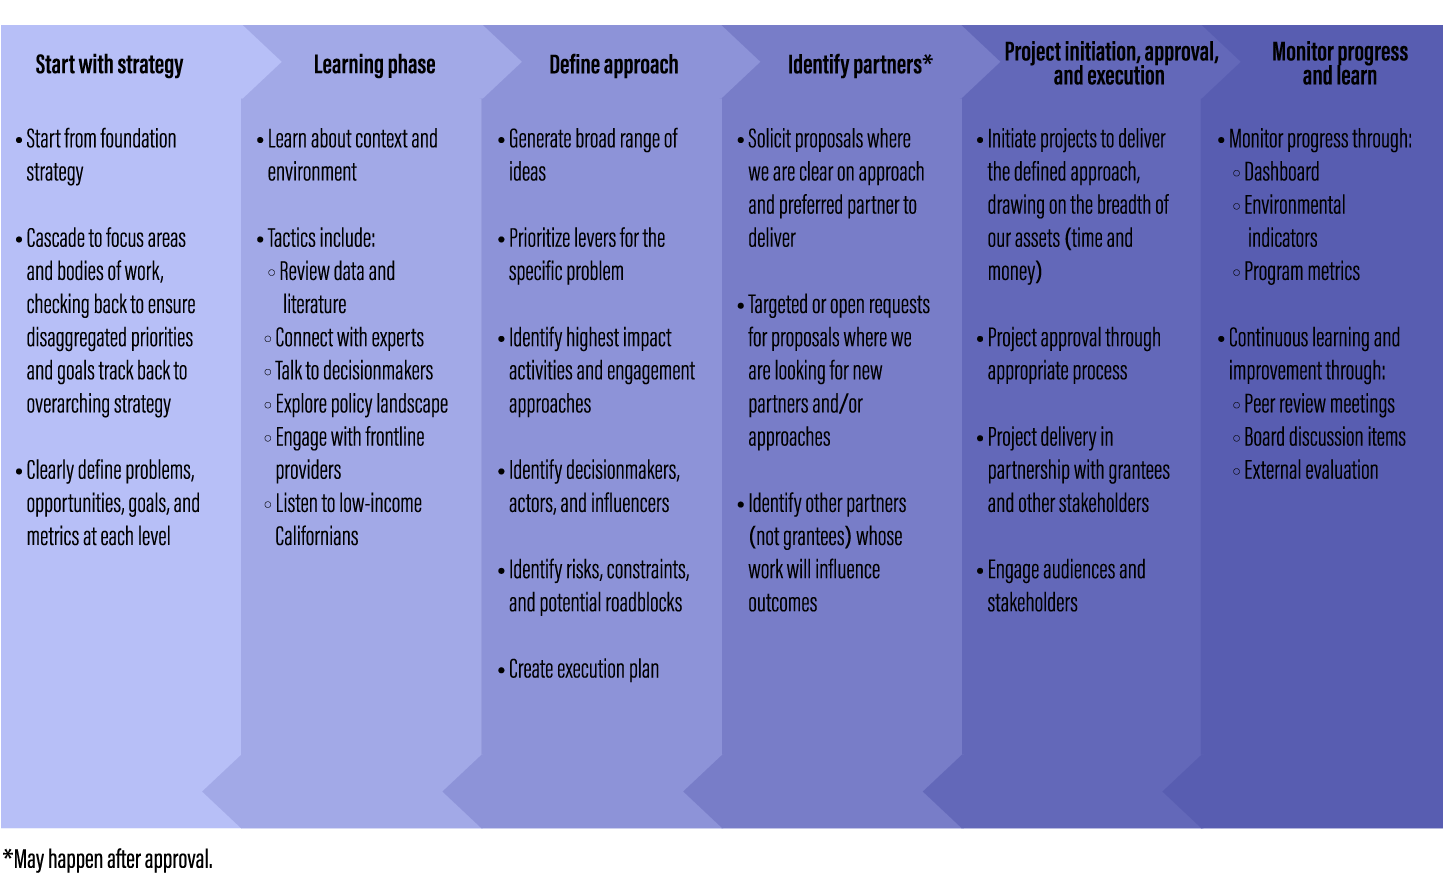 Graphic detailing how CHCF approaches project development with it's strategic framework.